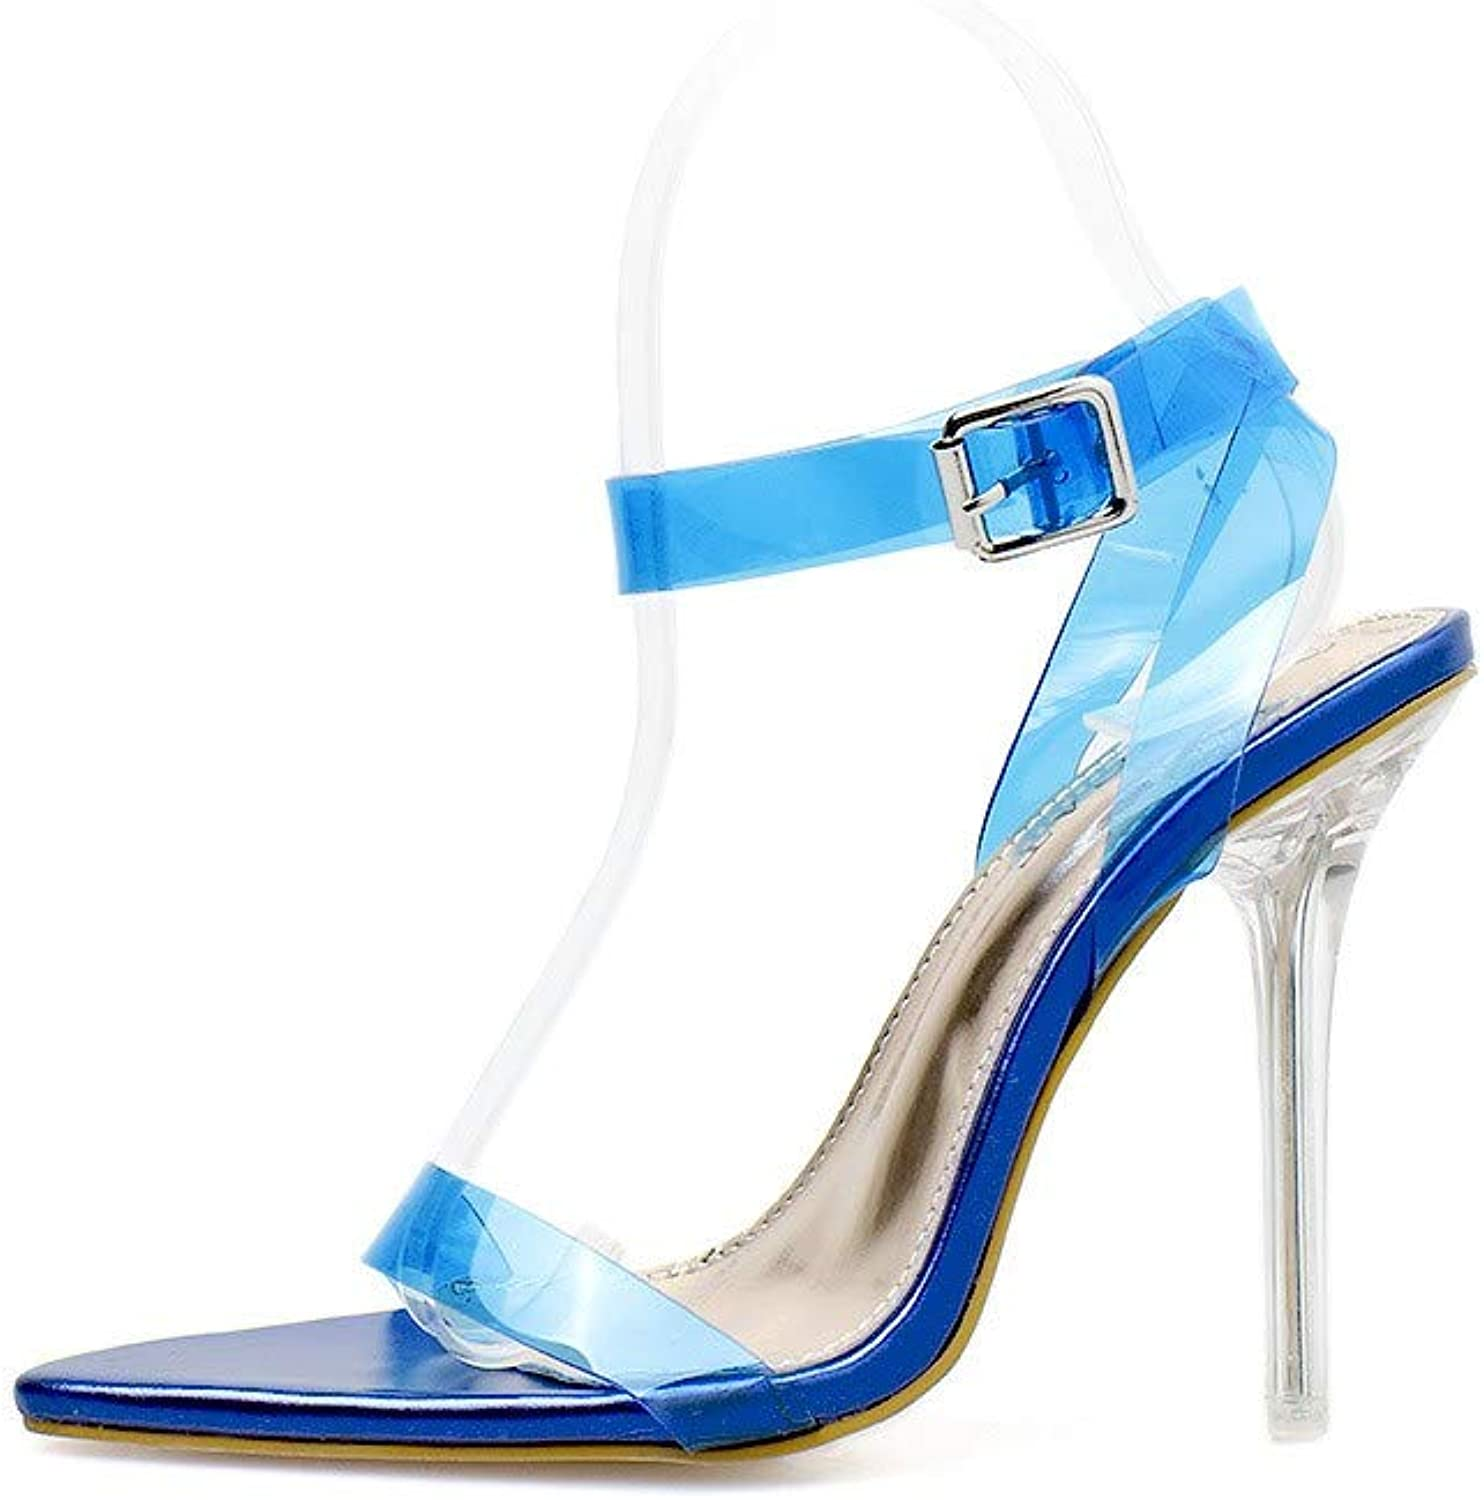 JQfashion Women's High-Heeled shoes Spring and Summer Sandals Tip Fine-Heeled Sexy Transparent PVC Coloured Crystal Heel